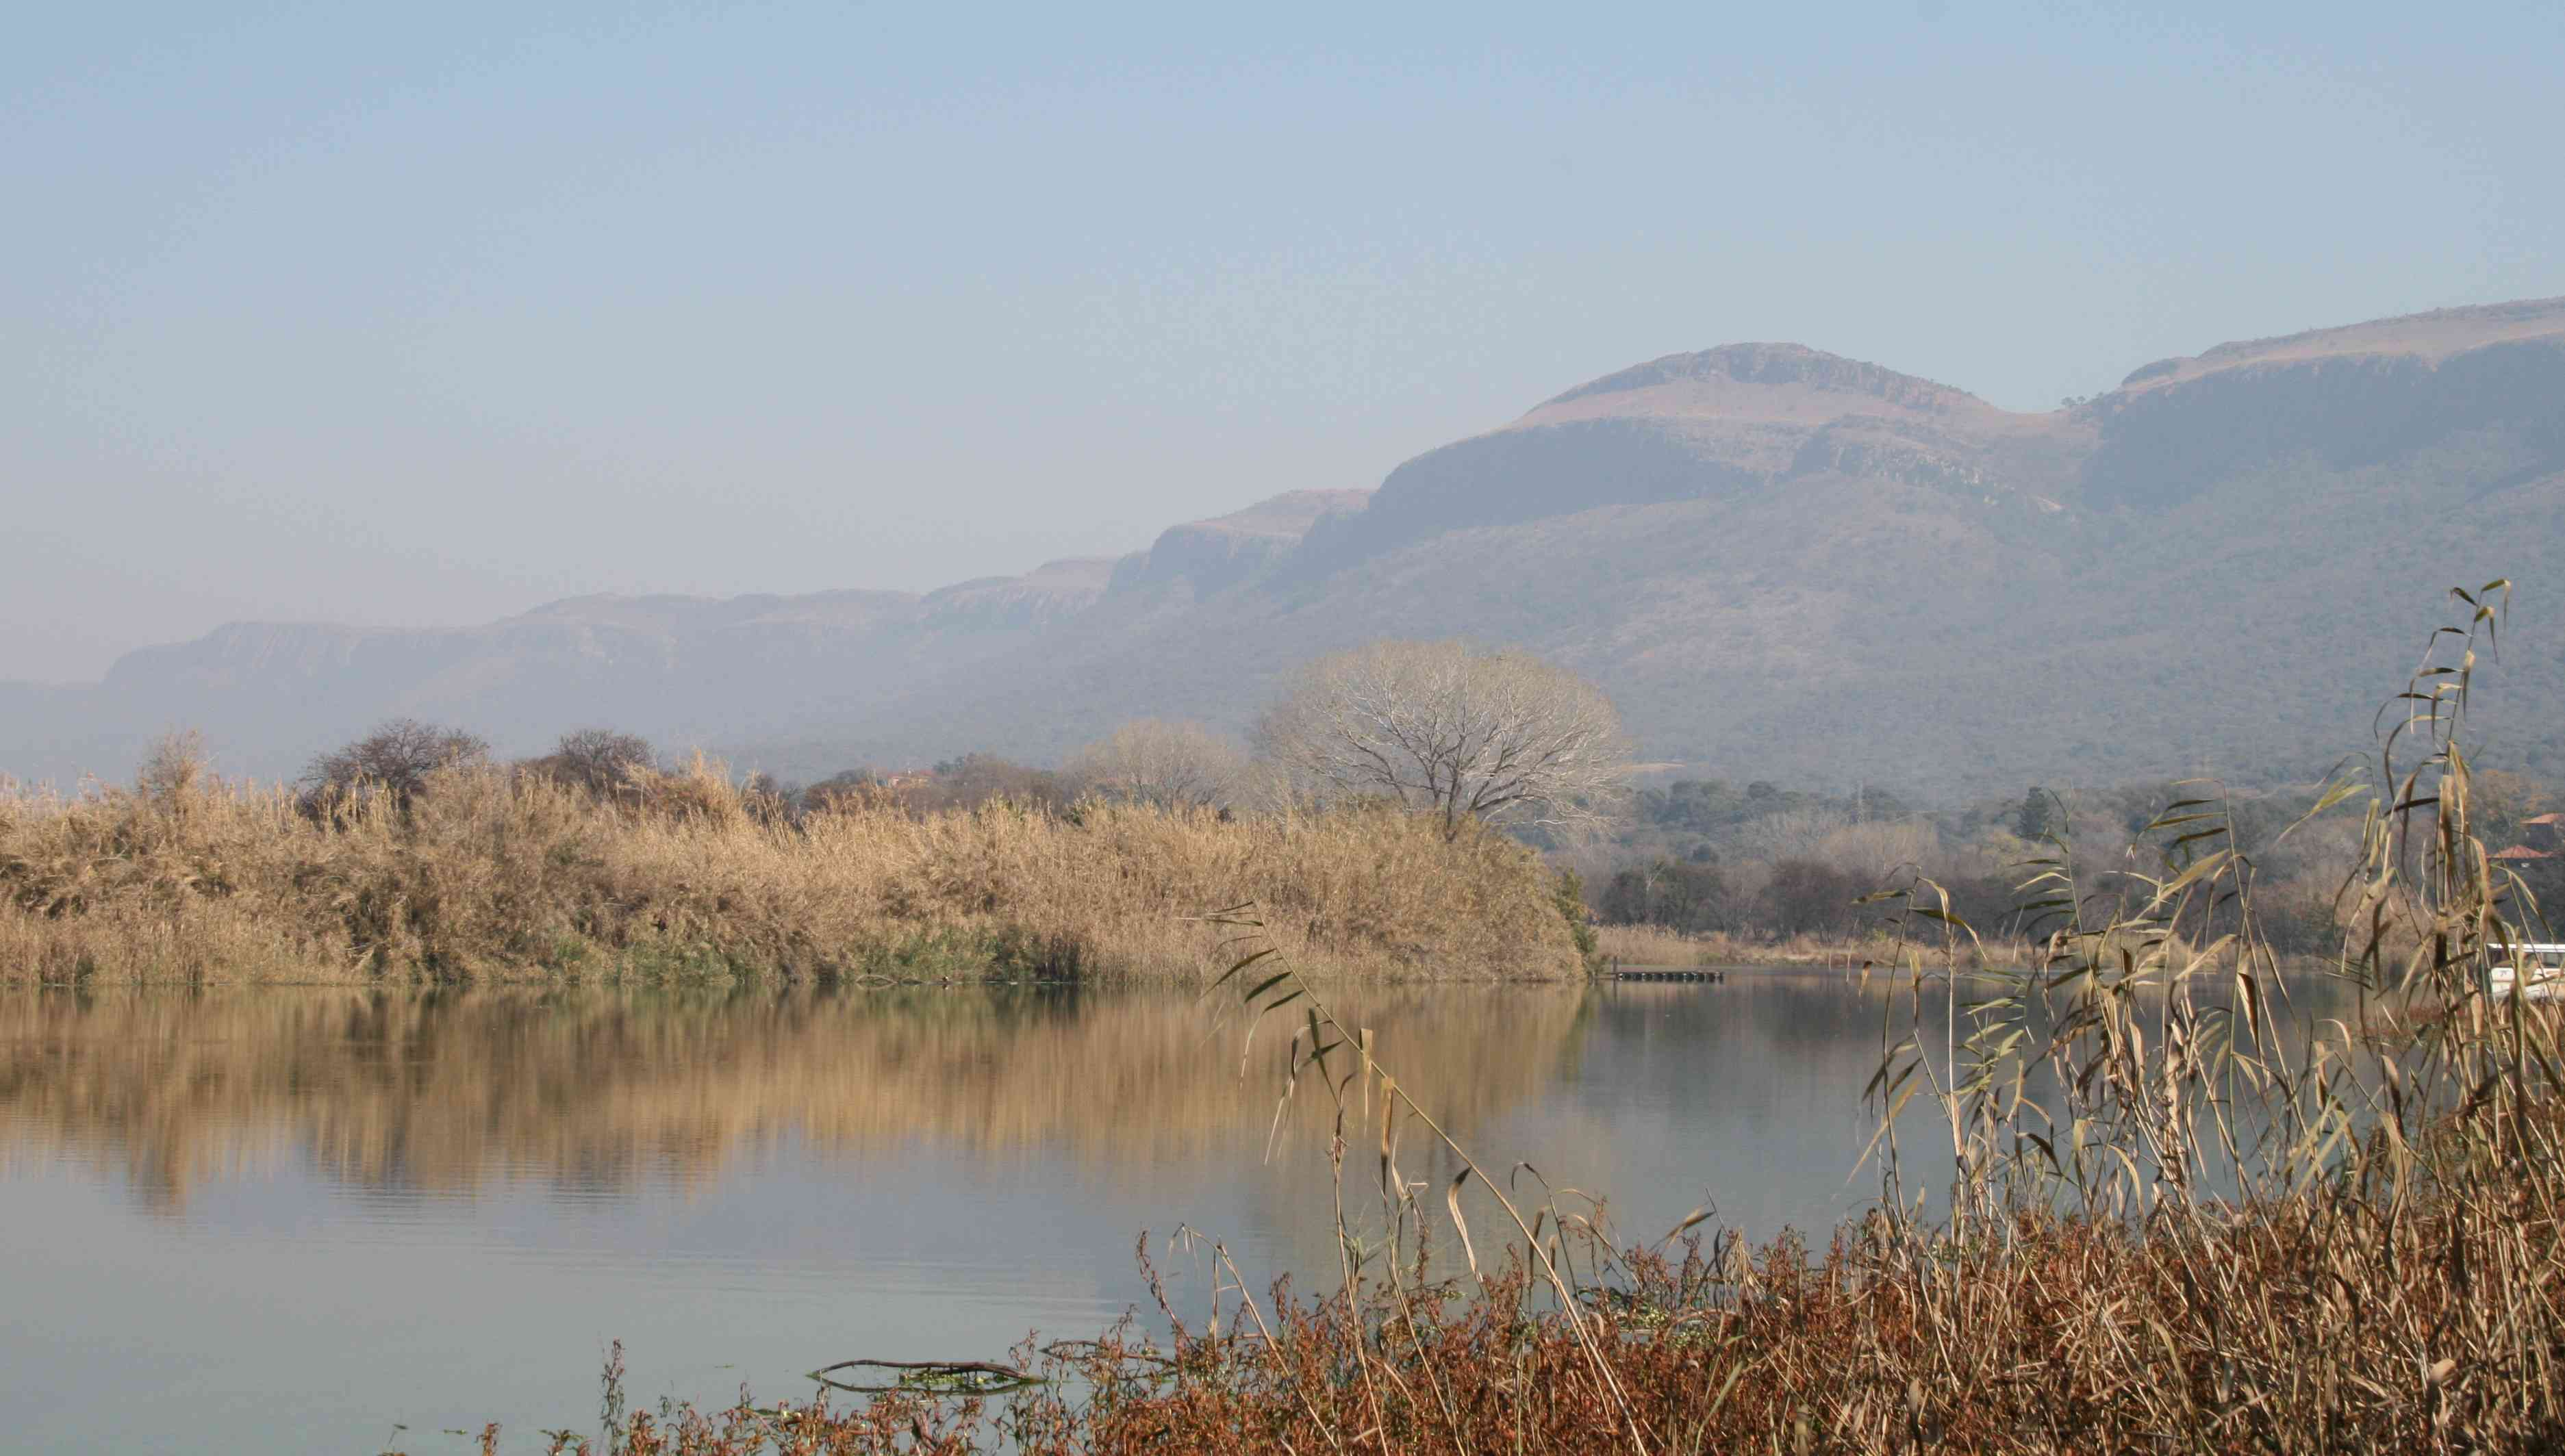 A tranquil part of the dam overlooked by the Magaliesberg